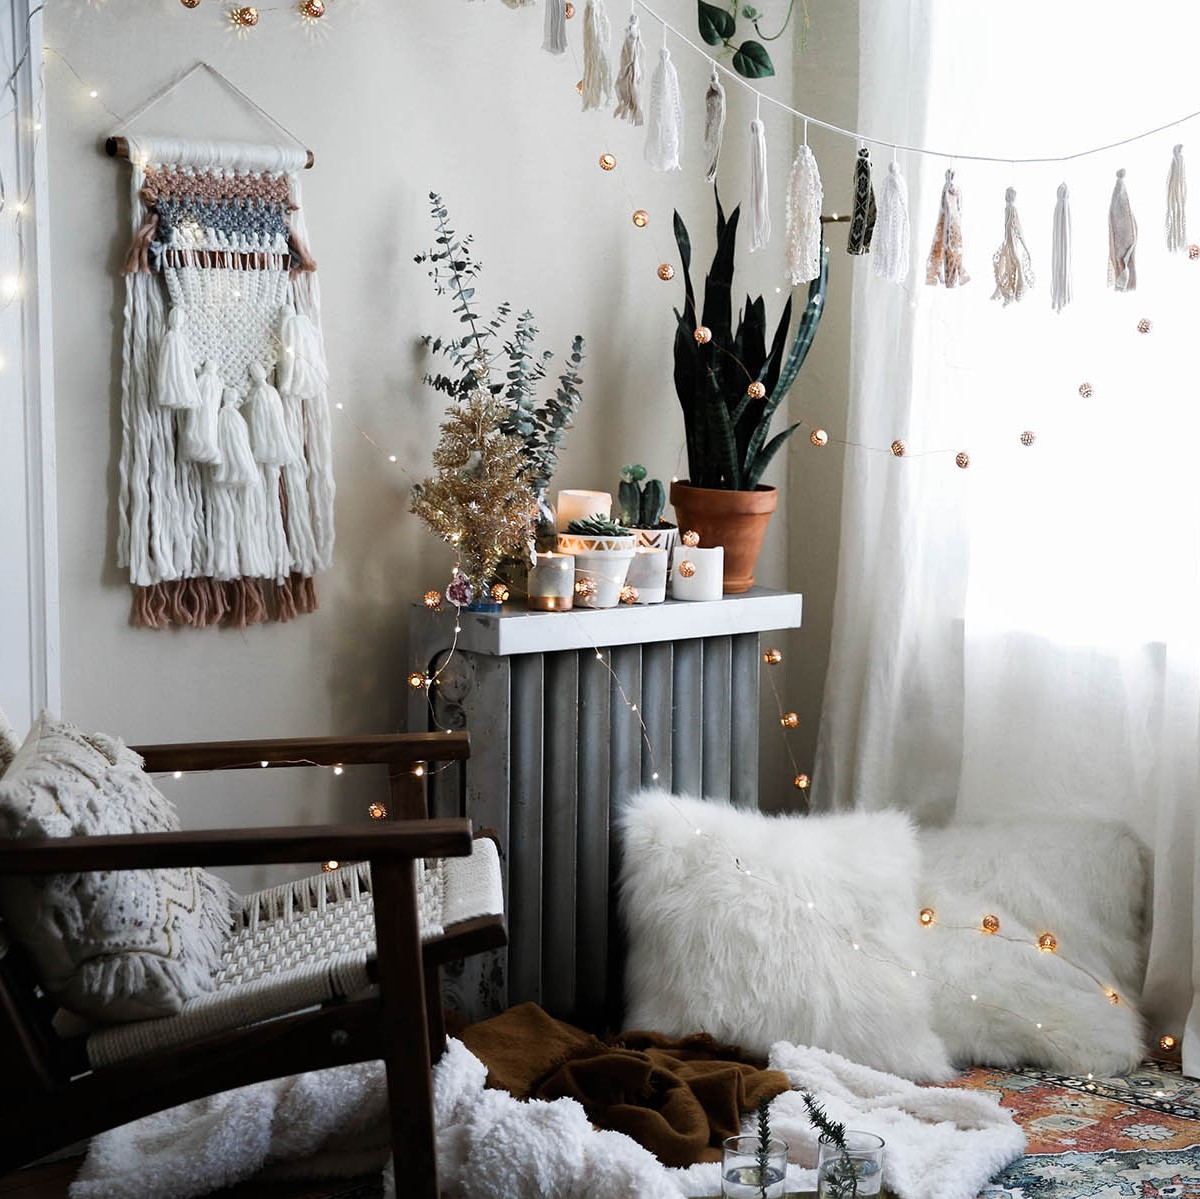 a-cozy-home-for-the-chilly-winter-season-liebe-was-ist-interoir-diy-lifestyle-inspiration-weihnachtlich-winterliche-deko-ideen-5